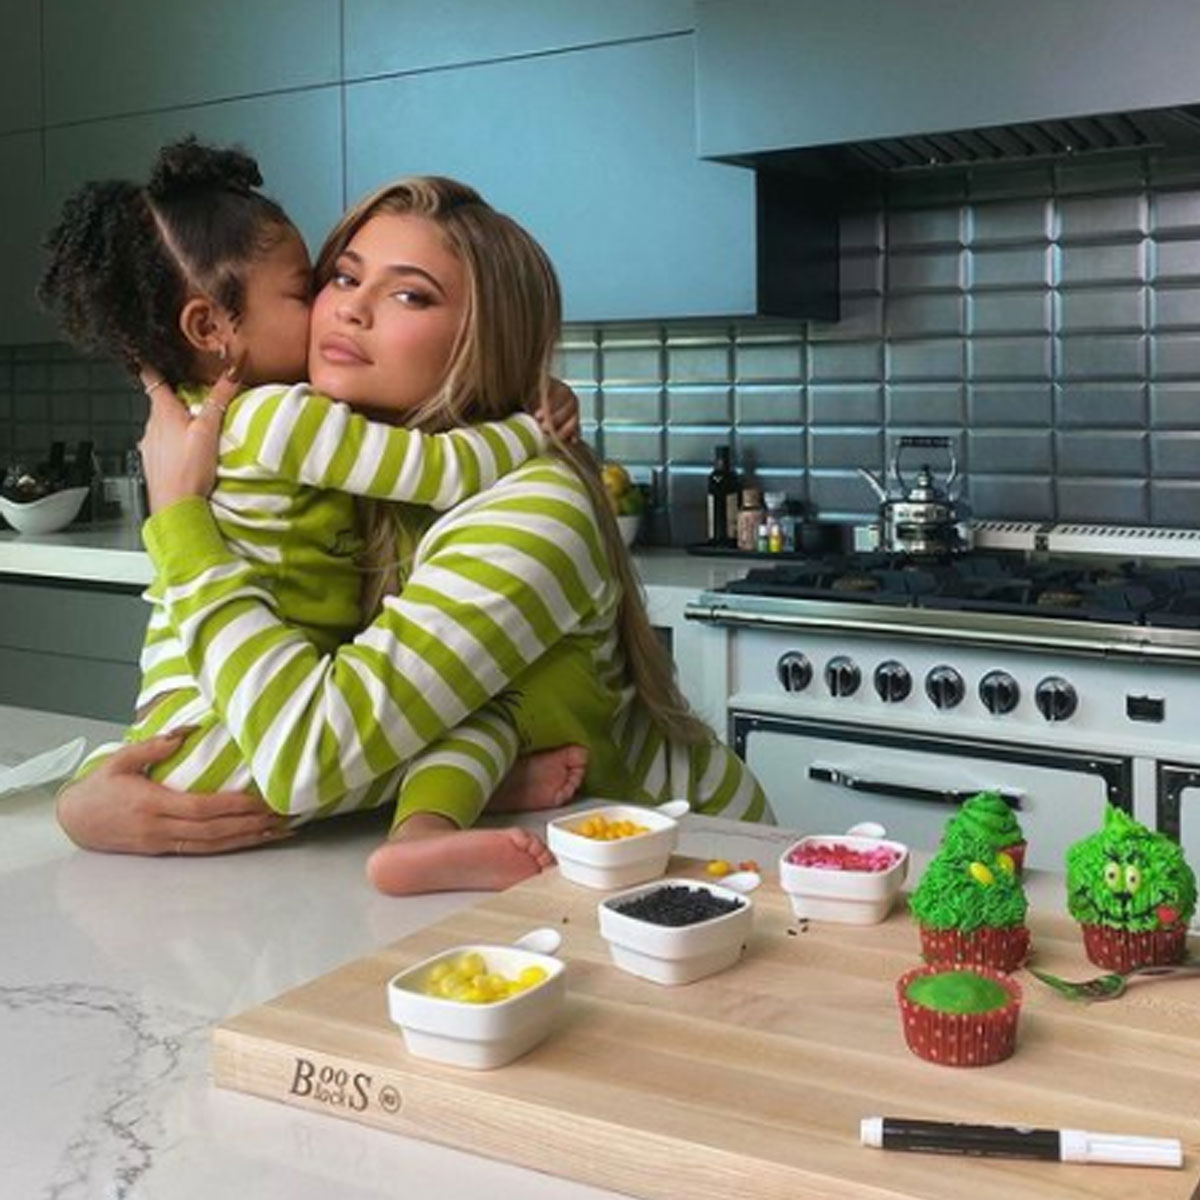 See Stormi Webster Shower Mom Kylie Jenner With Compliments in Holiday Baking Video